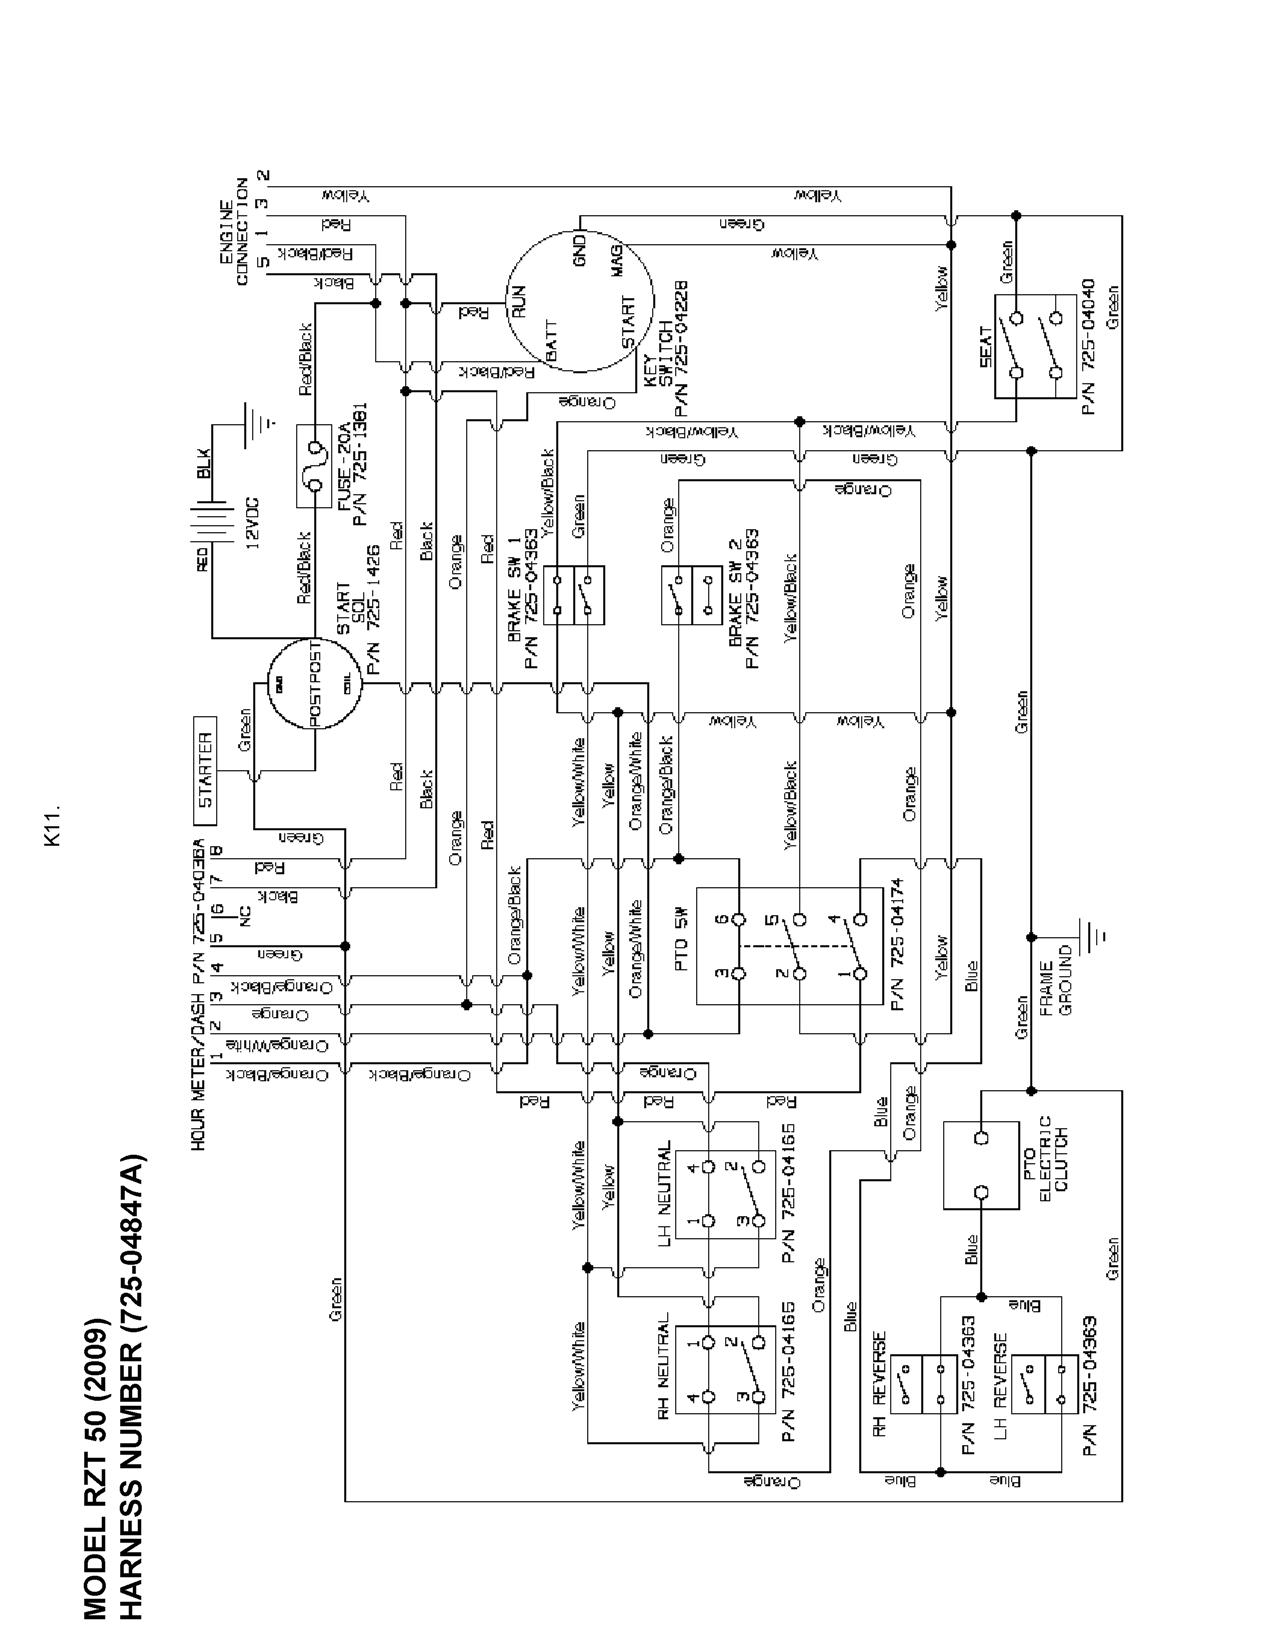 i have a cub cadet rzt 50 zero turn it will not start nor with regard to cub cadet rzt 50 parts diagram cub cadet 1170 wiring diagram mtd cub cadet wiring diagram cub cadet rzt22 wiring diagram at honlapkeszites.co